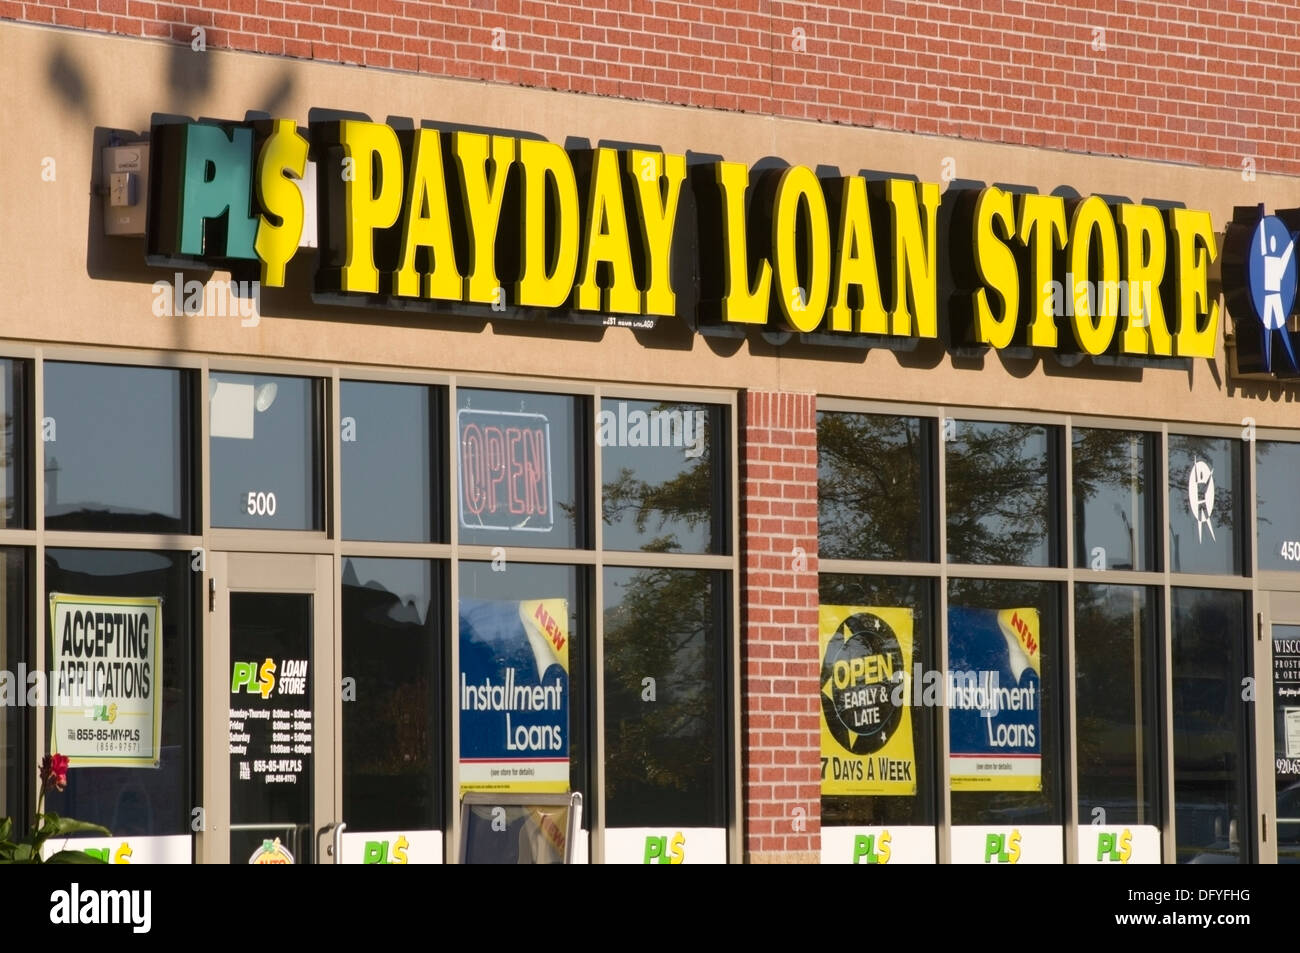 Payday loans help image 4